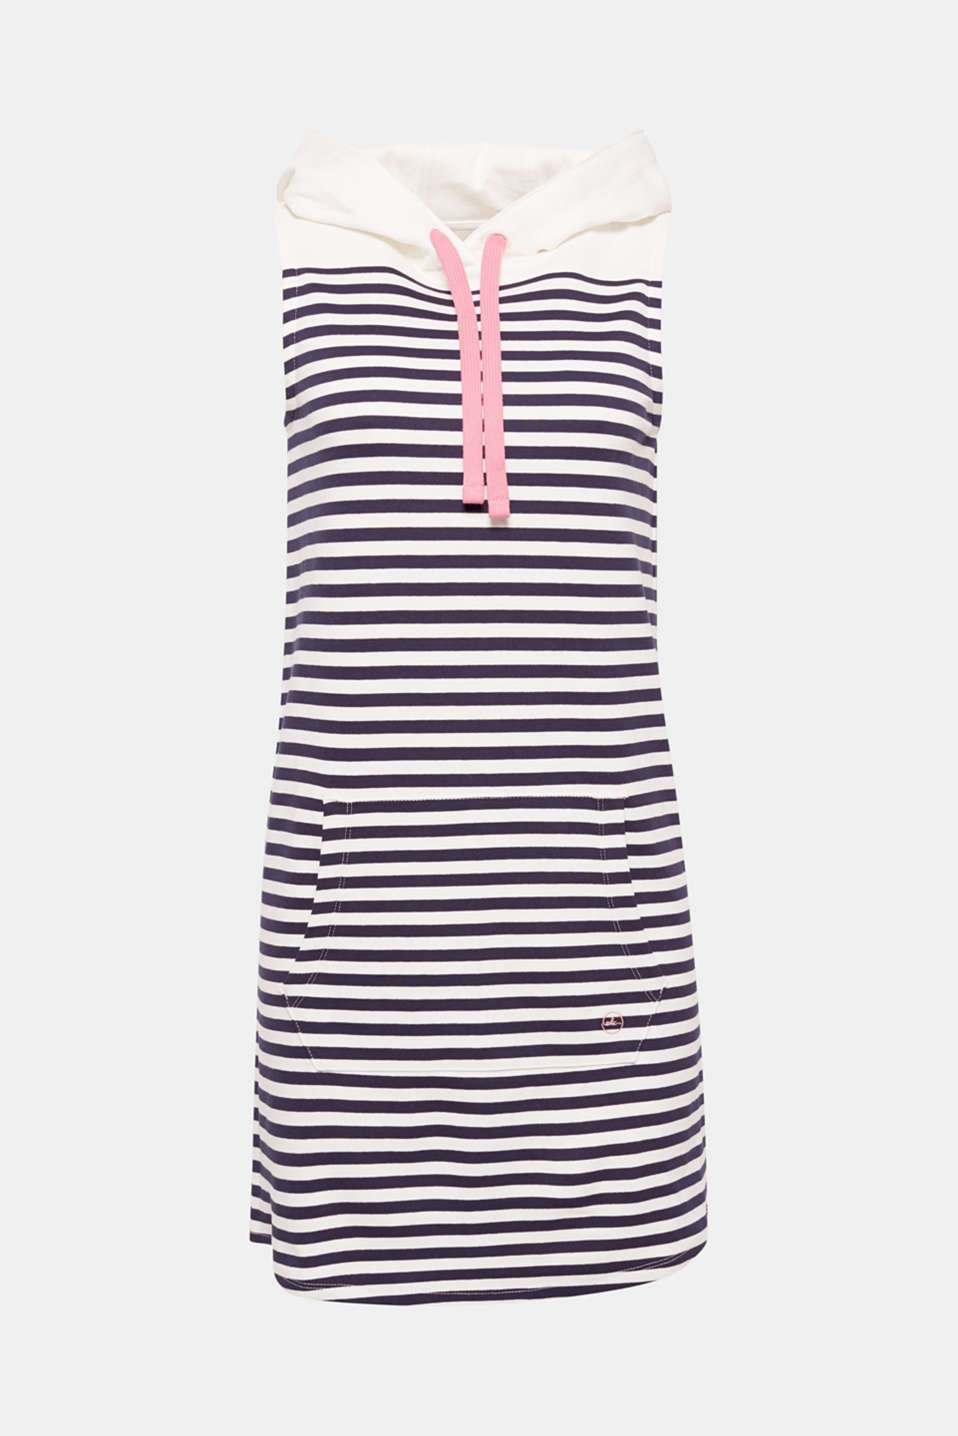 This sleeveless hoodie dress made of nautical striped cotton sweatshirt fabric is super comfortable and fresh.